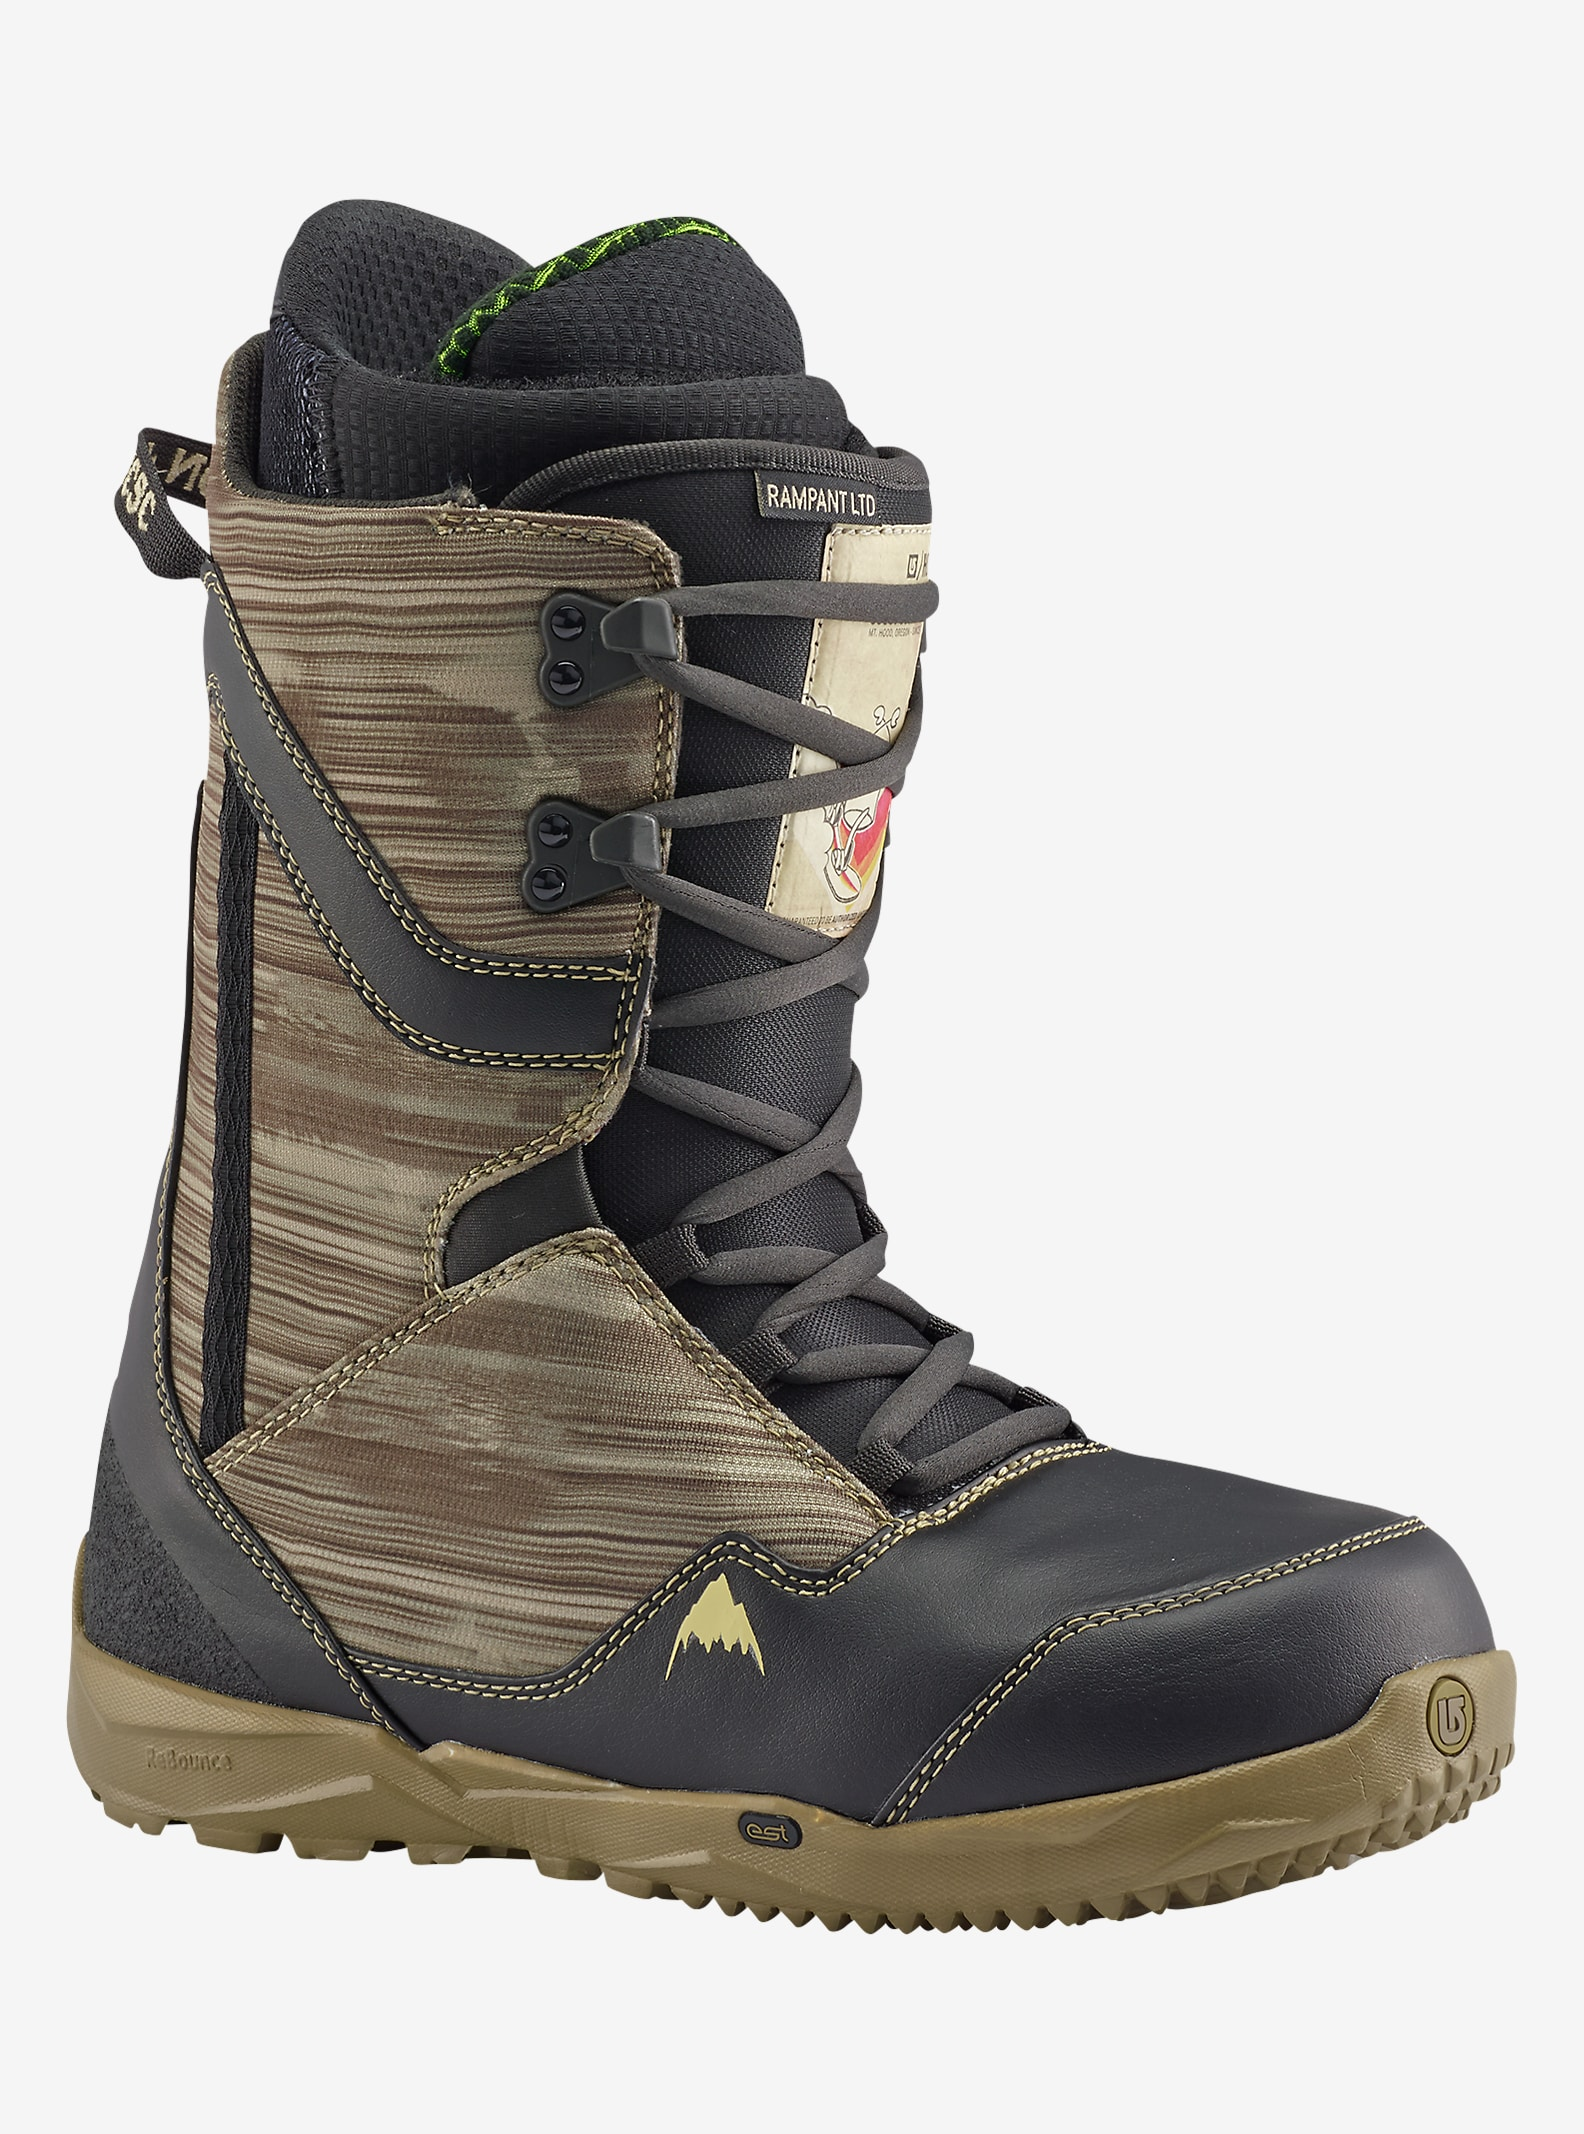 HCSC x Burton Rampant LTD Snowboard Boot shown in HCSC